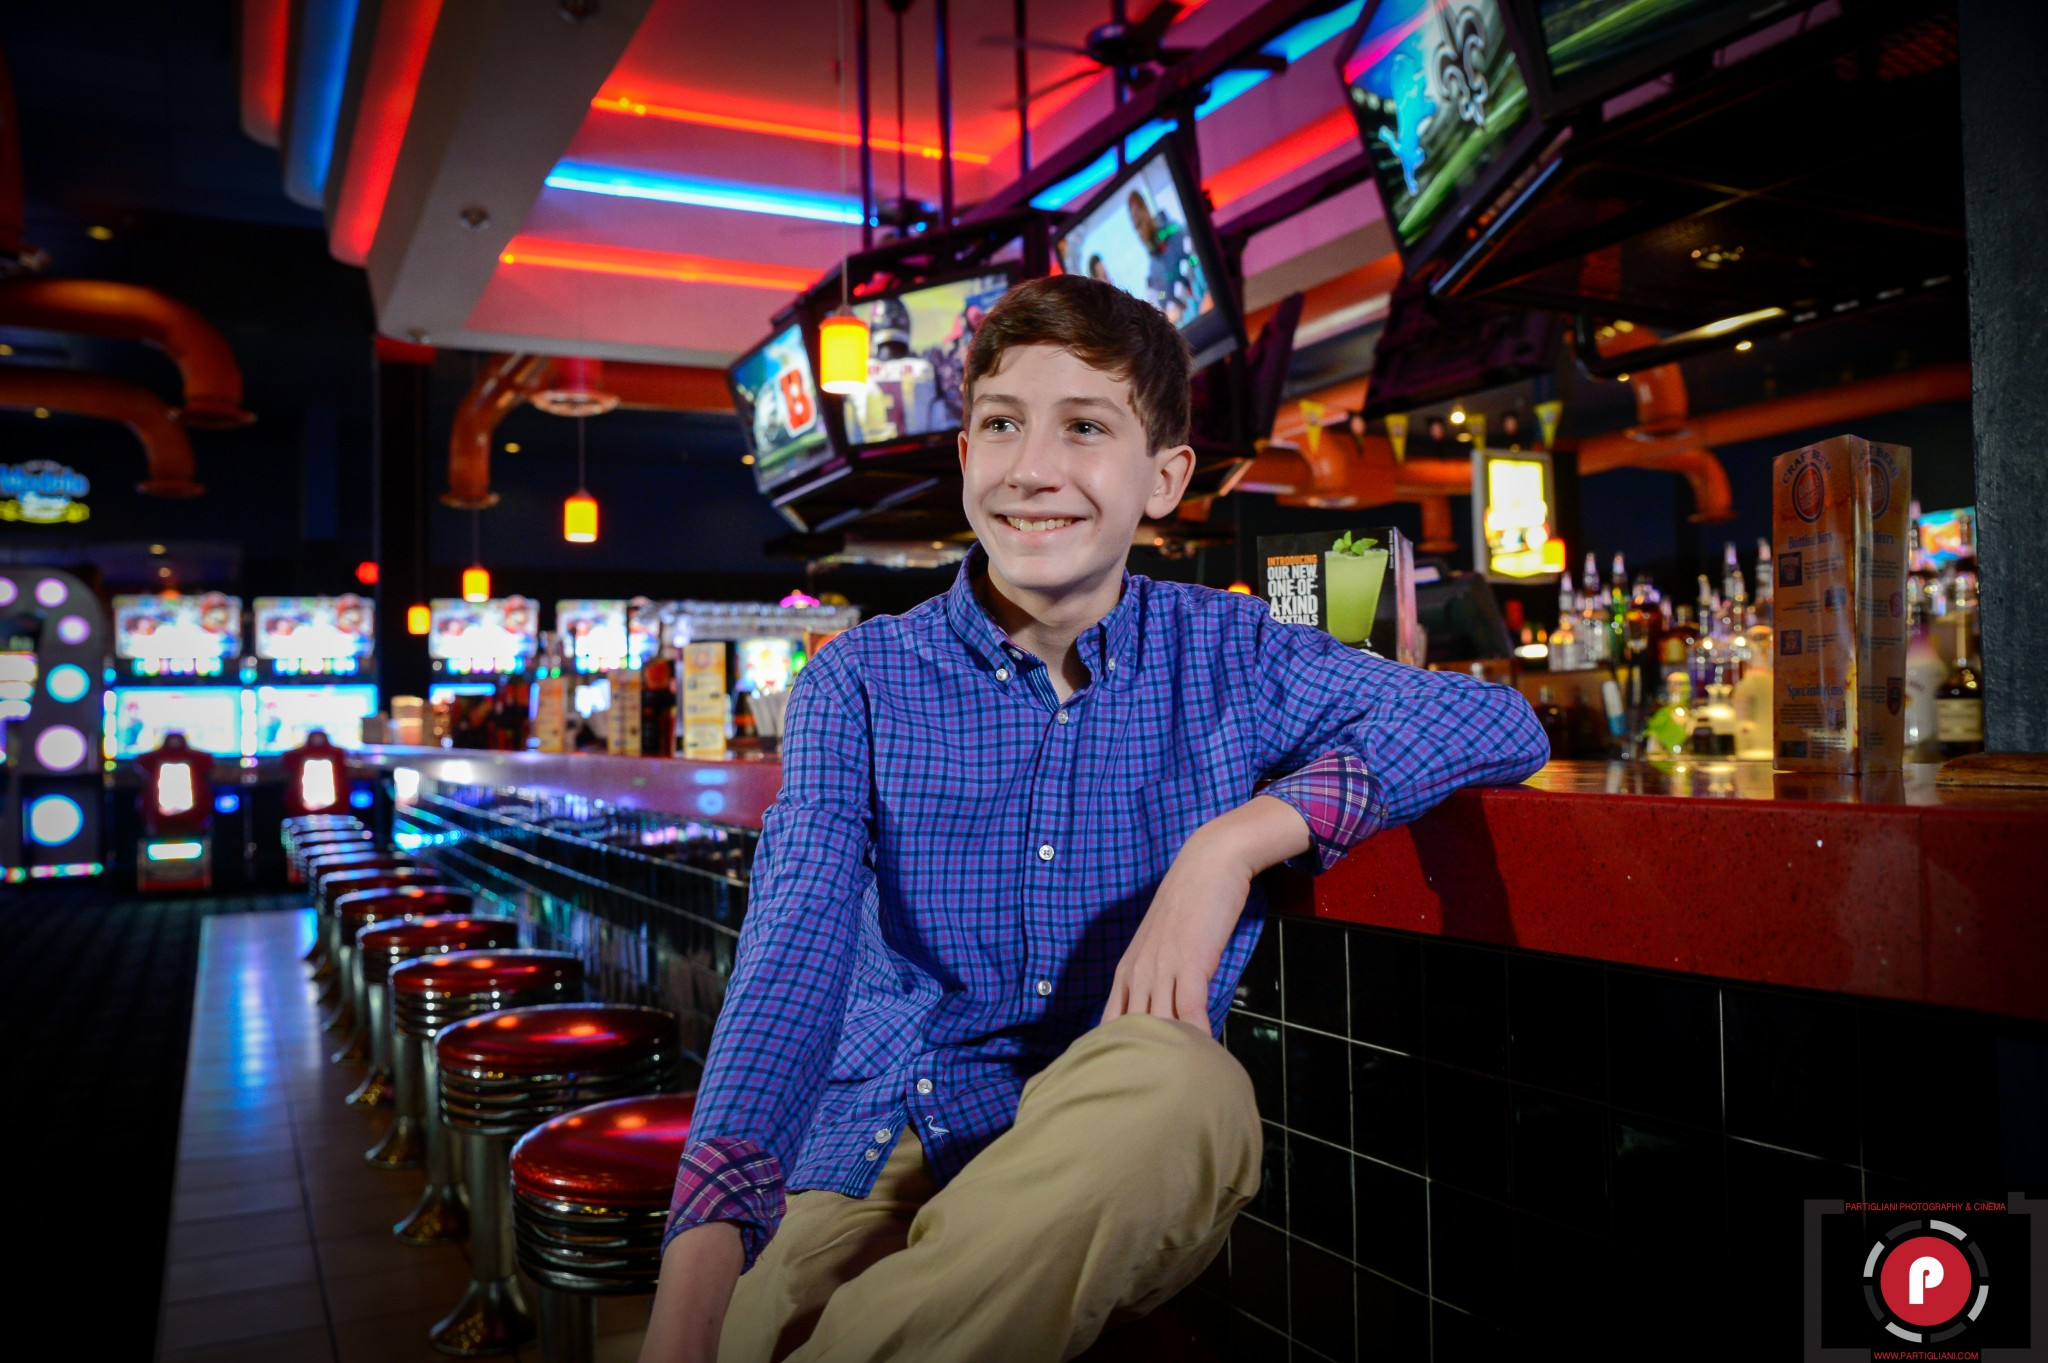 ZACHARY RUBIN BAR MITZVAH, B'NAI AVIV, DAVE AND BUSTER'S, ONE OF A KIND PARTY DESIGN. JAMMIN EXPRESS ENTERTAINMENT.